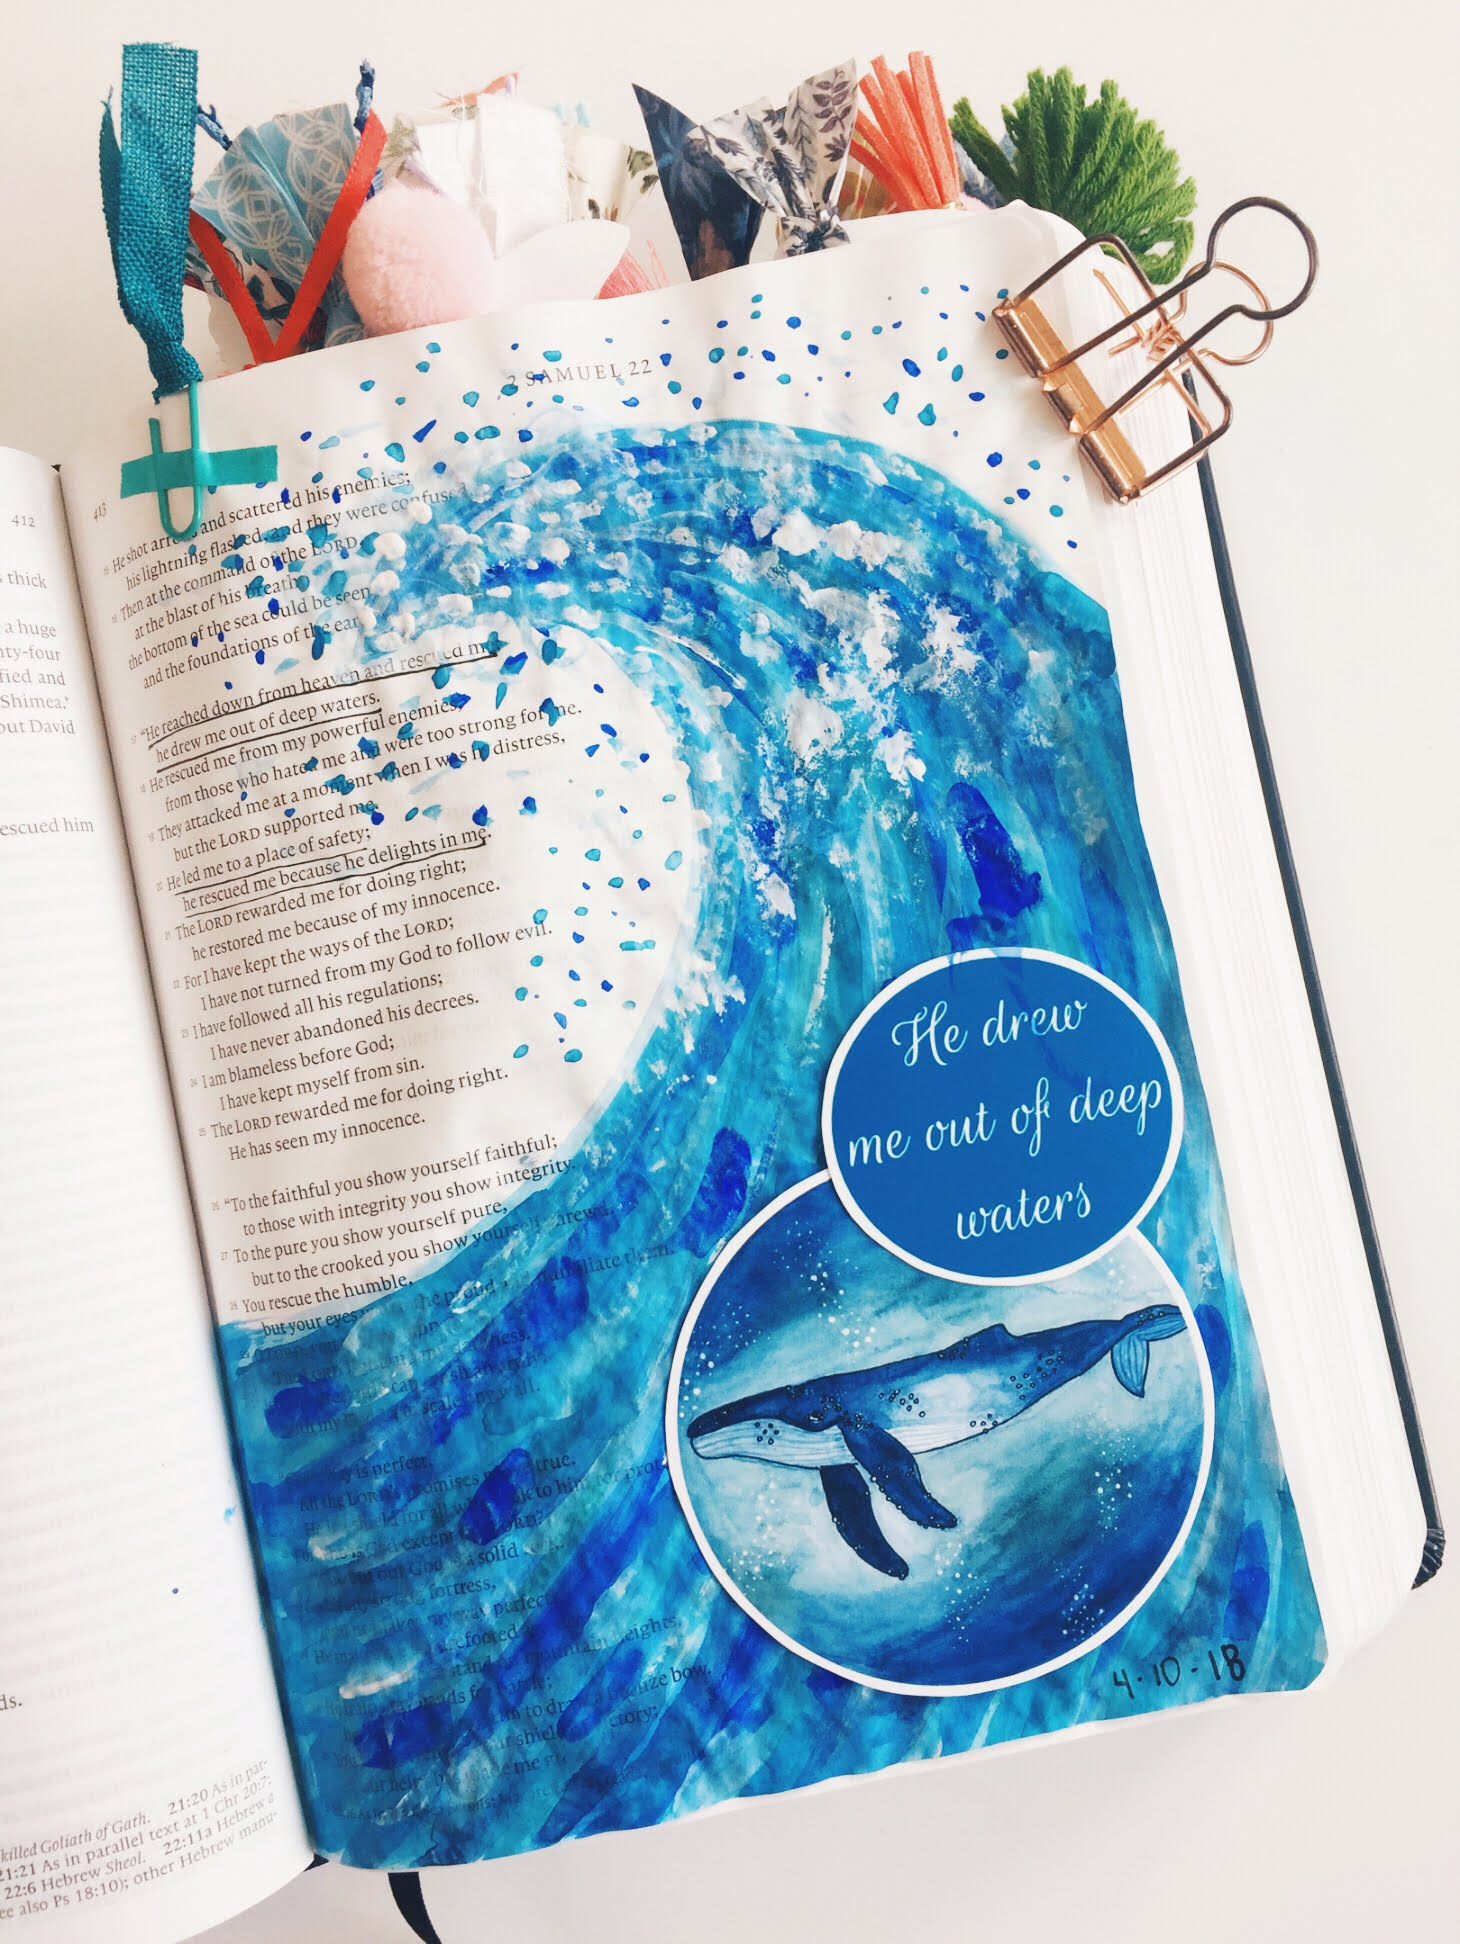 Oh My Gouache! | Bible Journaling with Gouache | Faith Heirlooms